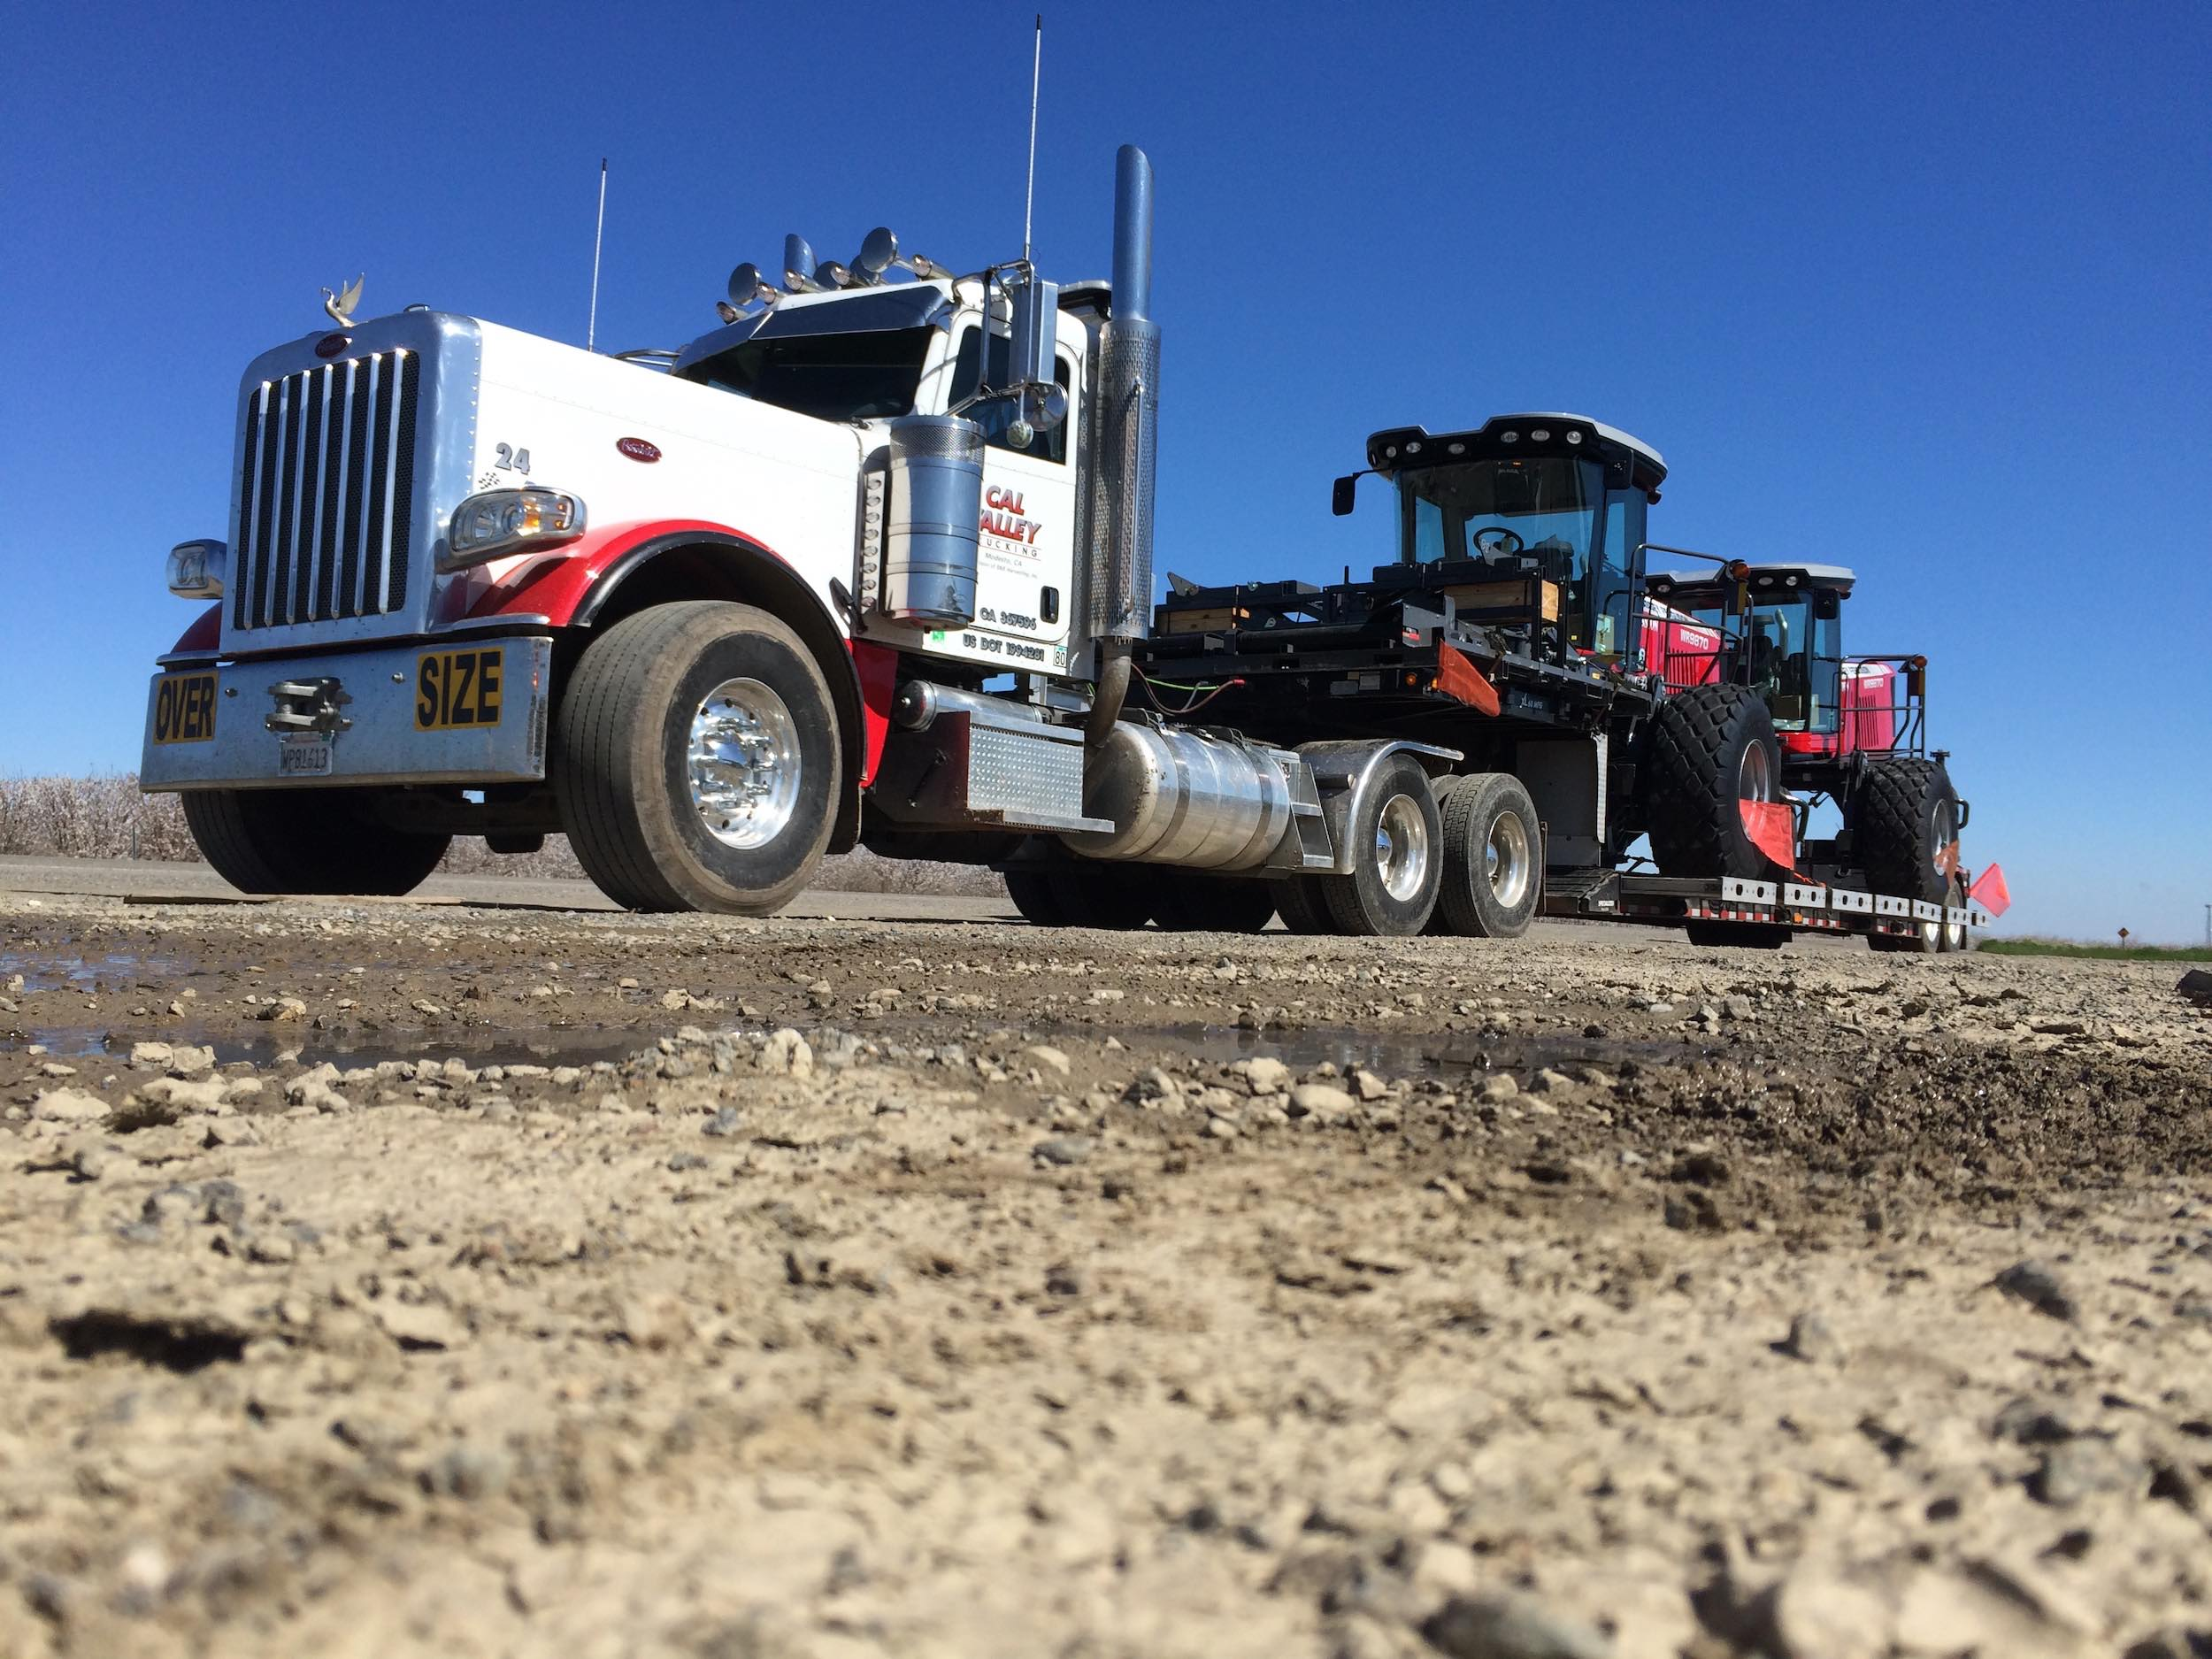 peterbilt-389-xl-rgn-massey-ferguson-swather.jpg